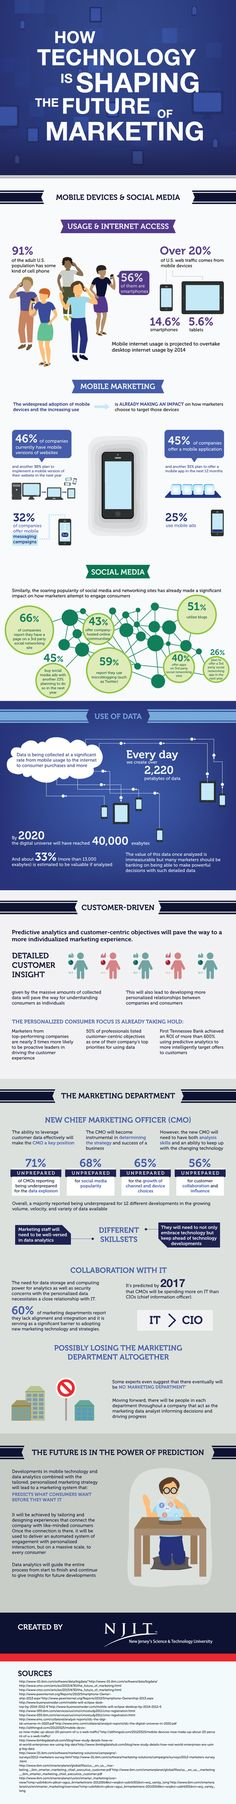 How Technology is Shaping the Future of Marketing (Infographic)